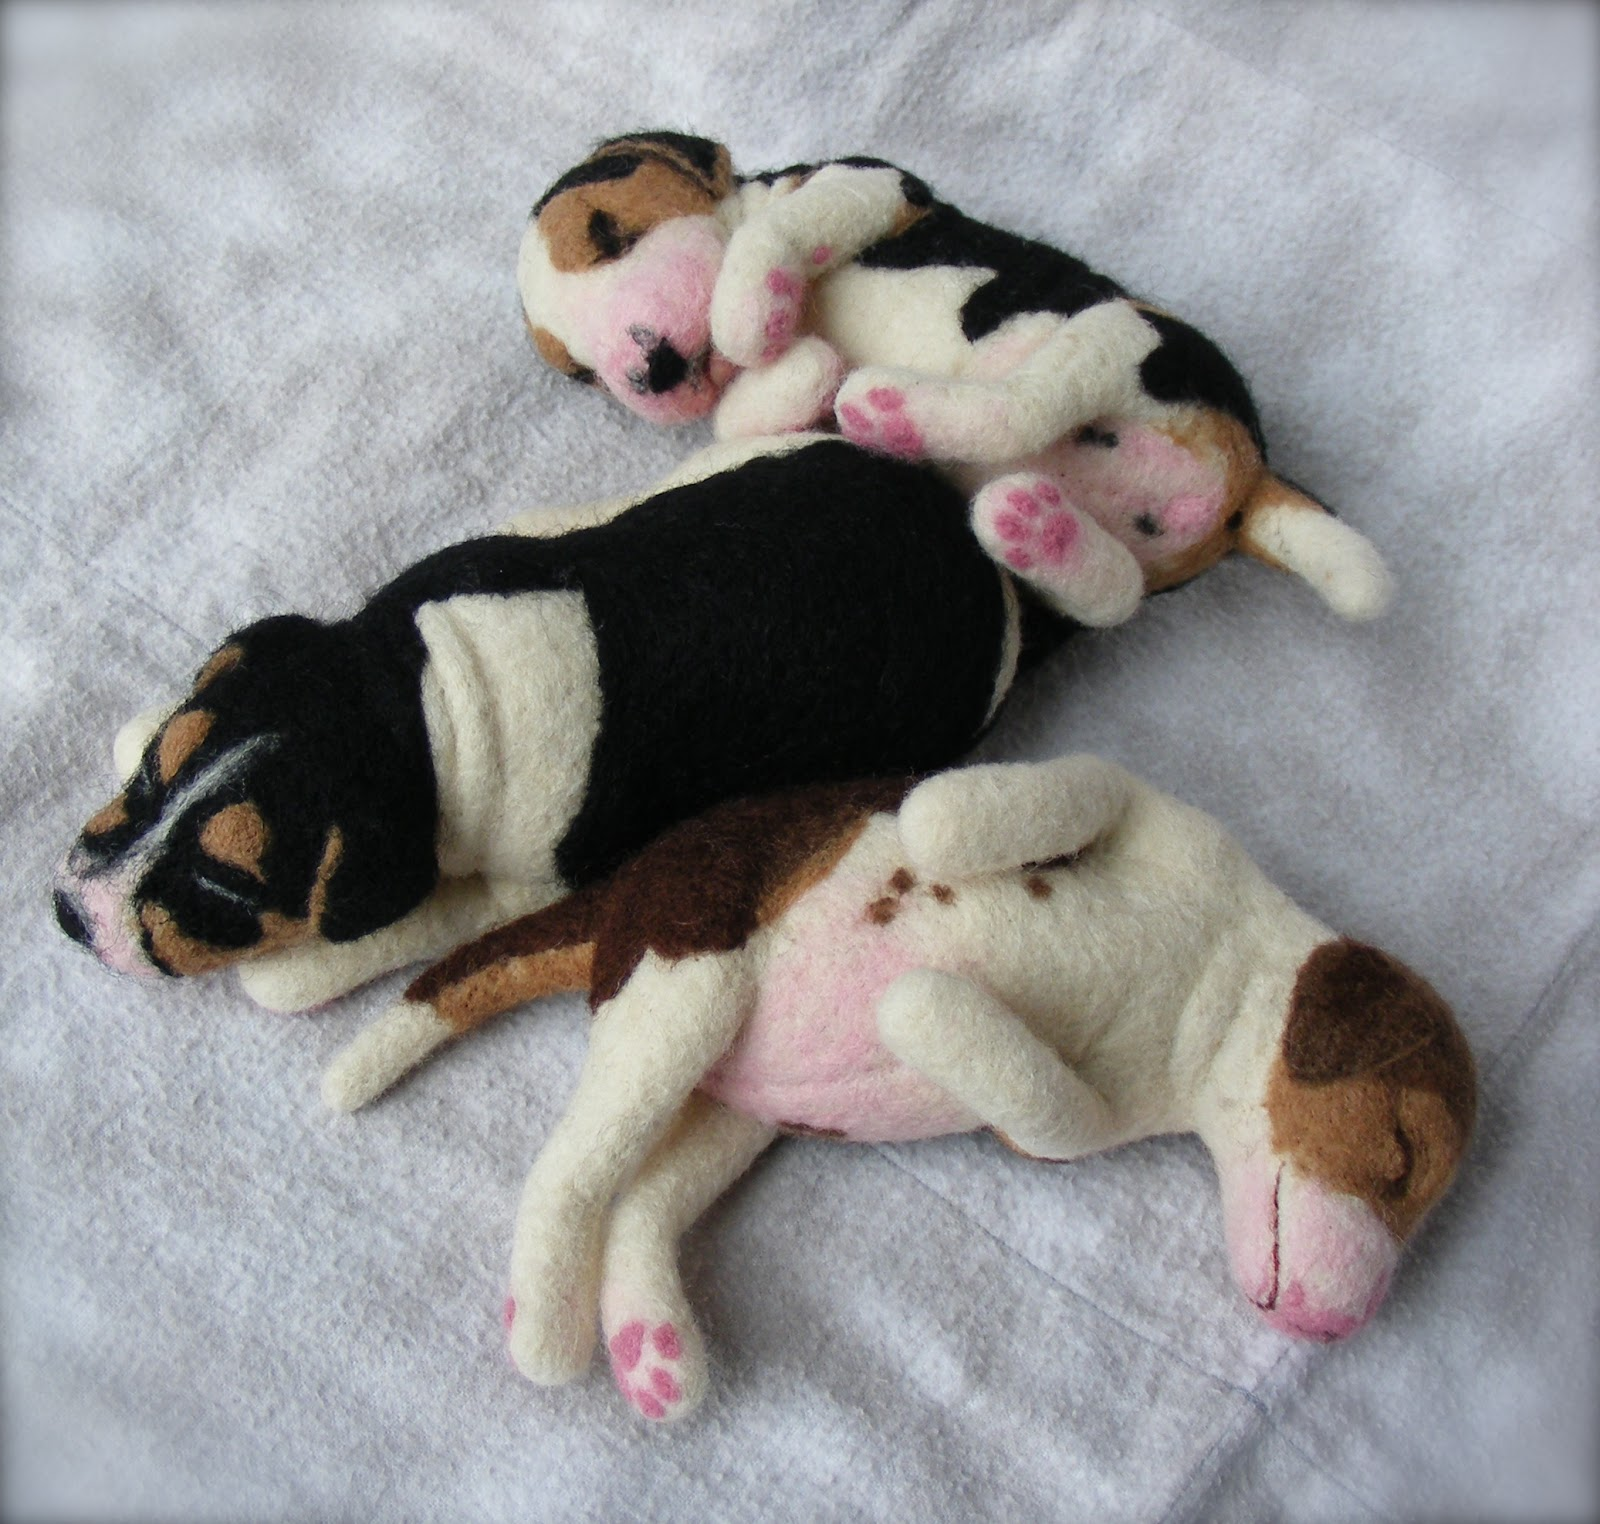 Cute Puppy Dogs: Small beagle puppies